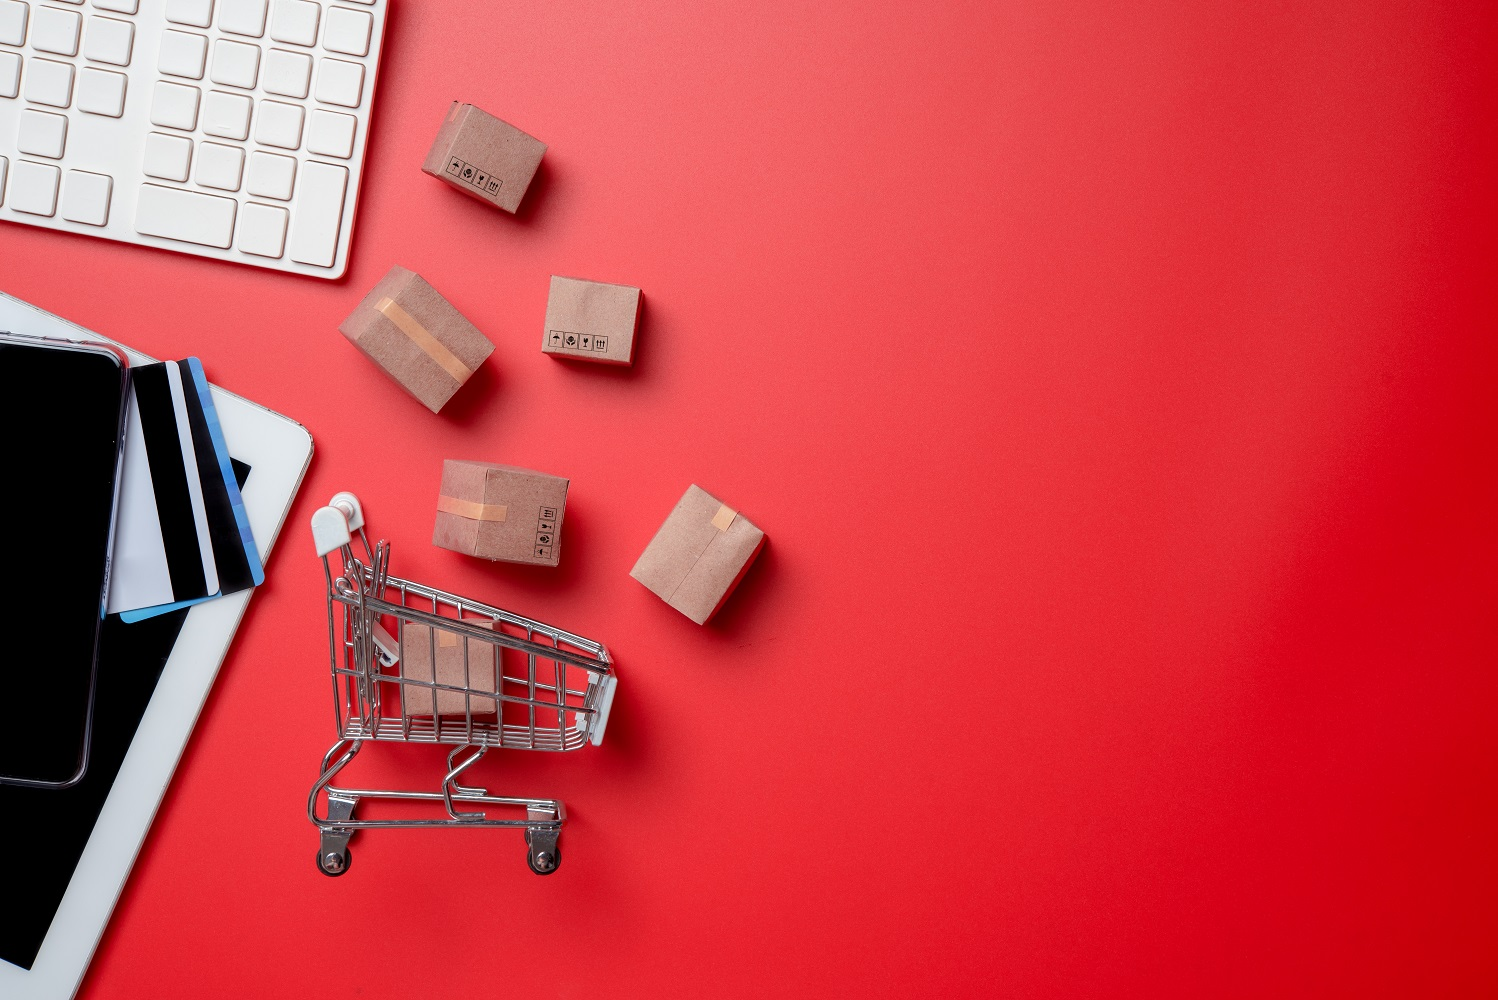 Online shopping, scatered office equpment and a miniature shopping cart